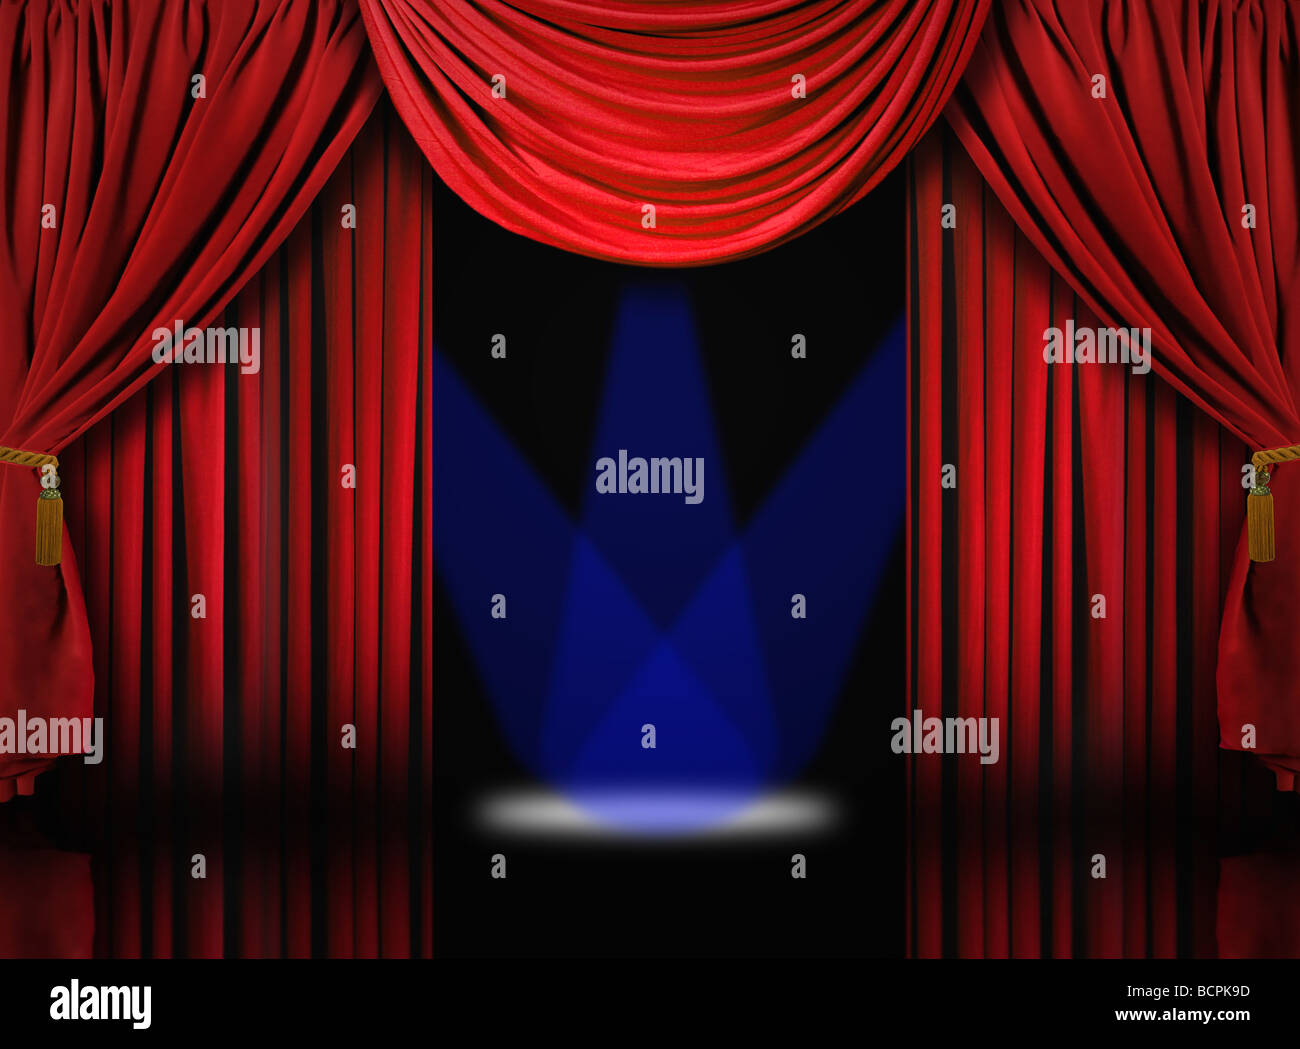 Beautiful Red Velvet Theater Stage Drape Curtains With Blue Spotlights - Stock Image